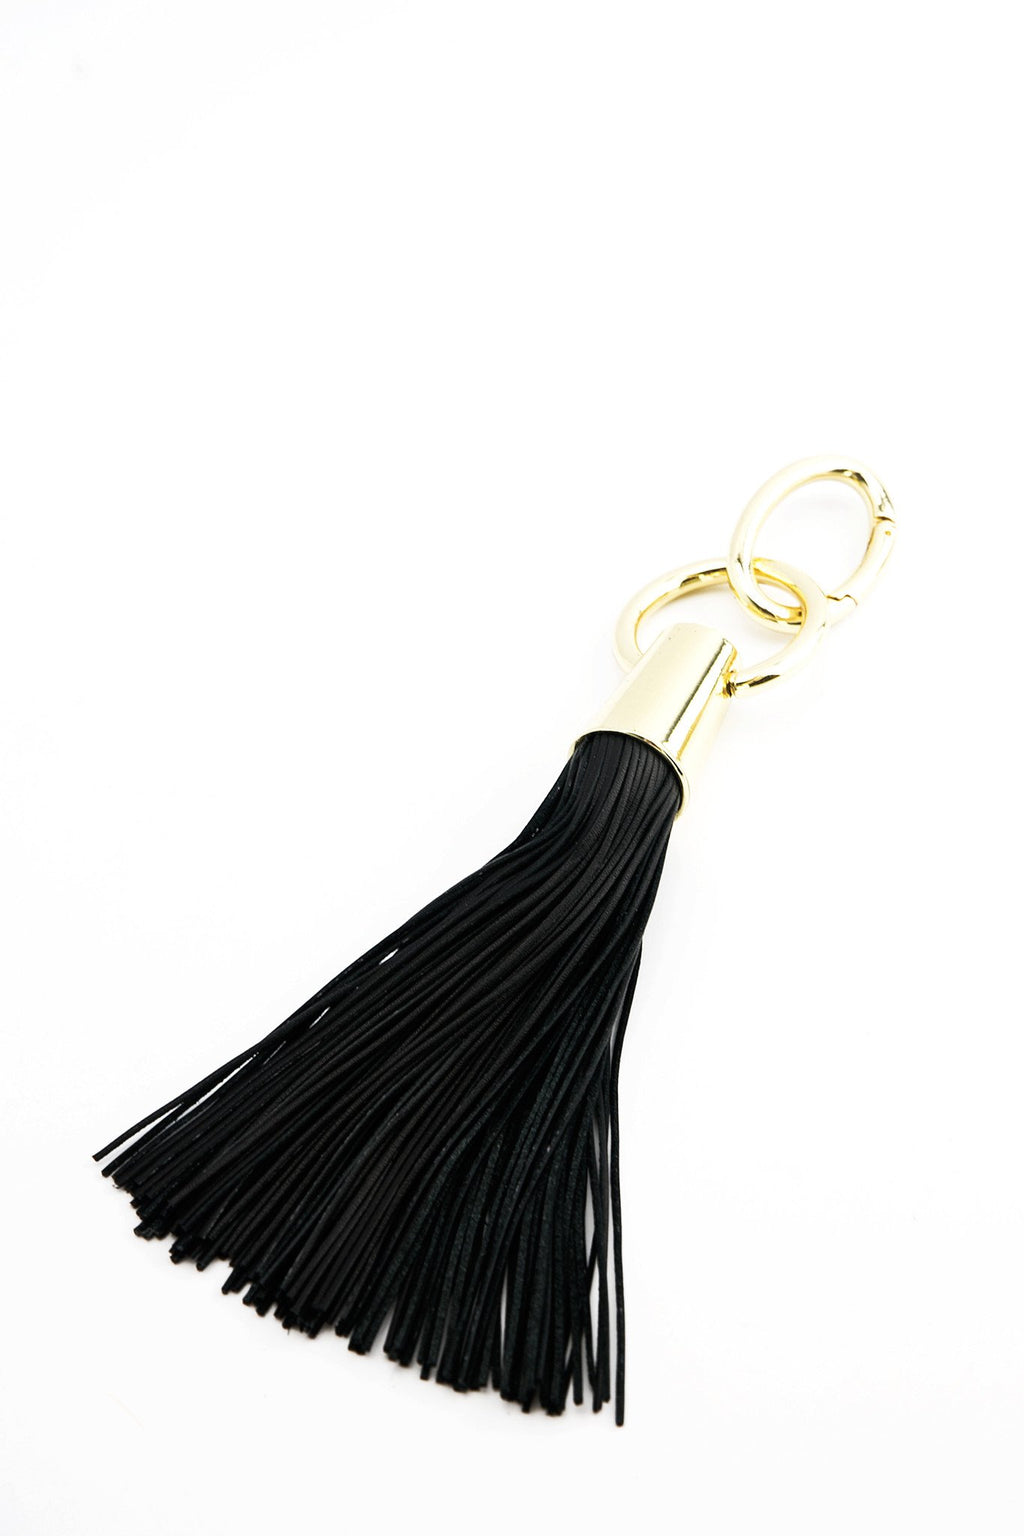 Clea Leather Fringe Key Chain - Haute & Rebellious